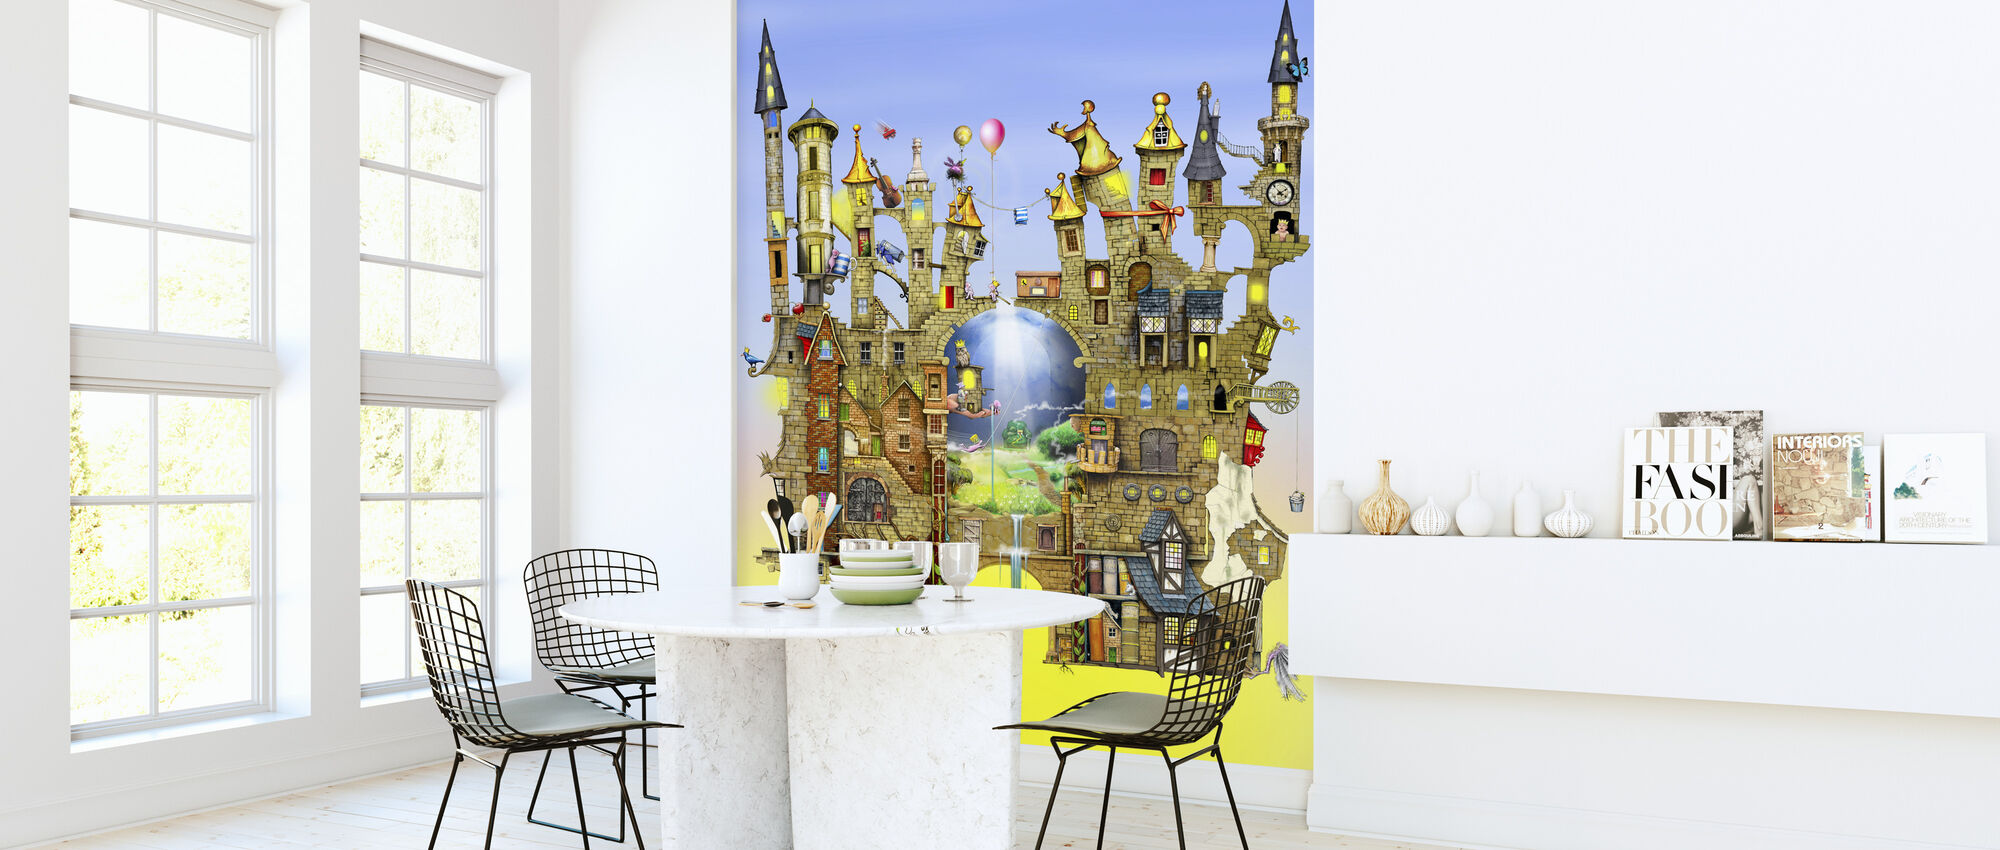 Castles in the Air - Wallpaper - Kitchen